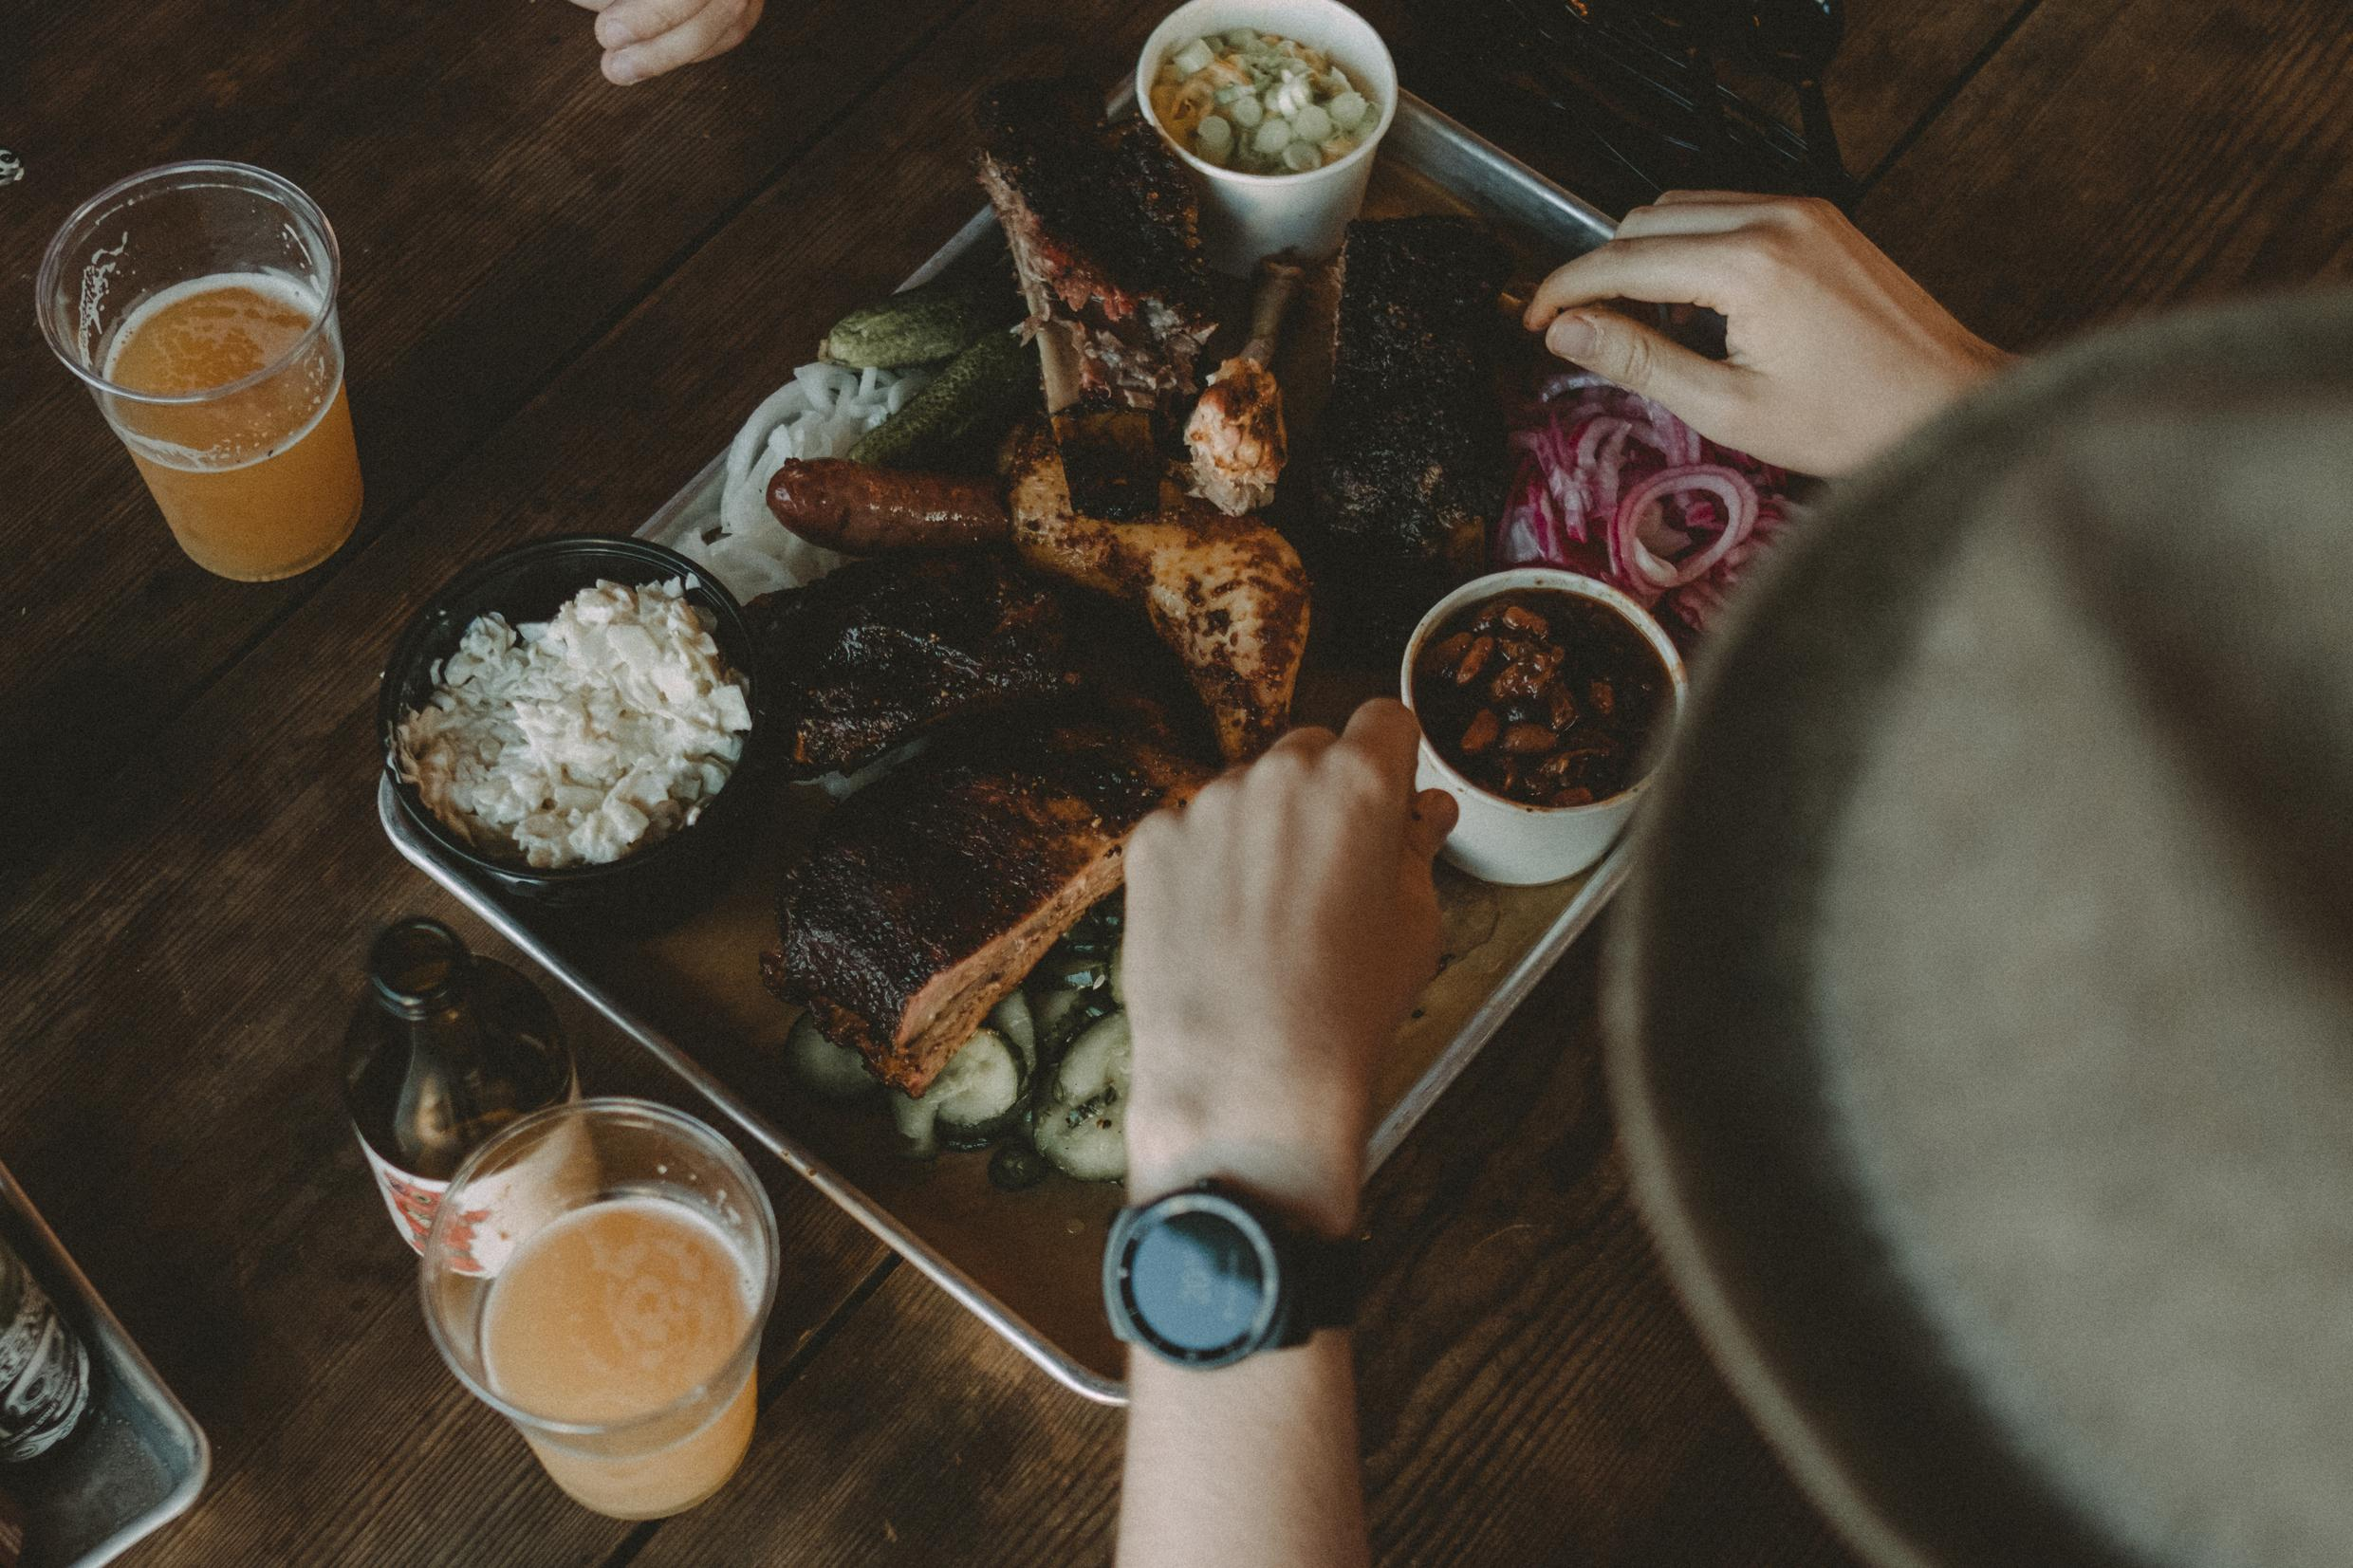 BBQ food on steel plate with beer and person eating